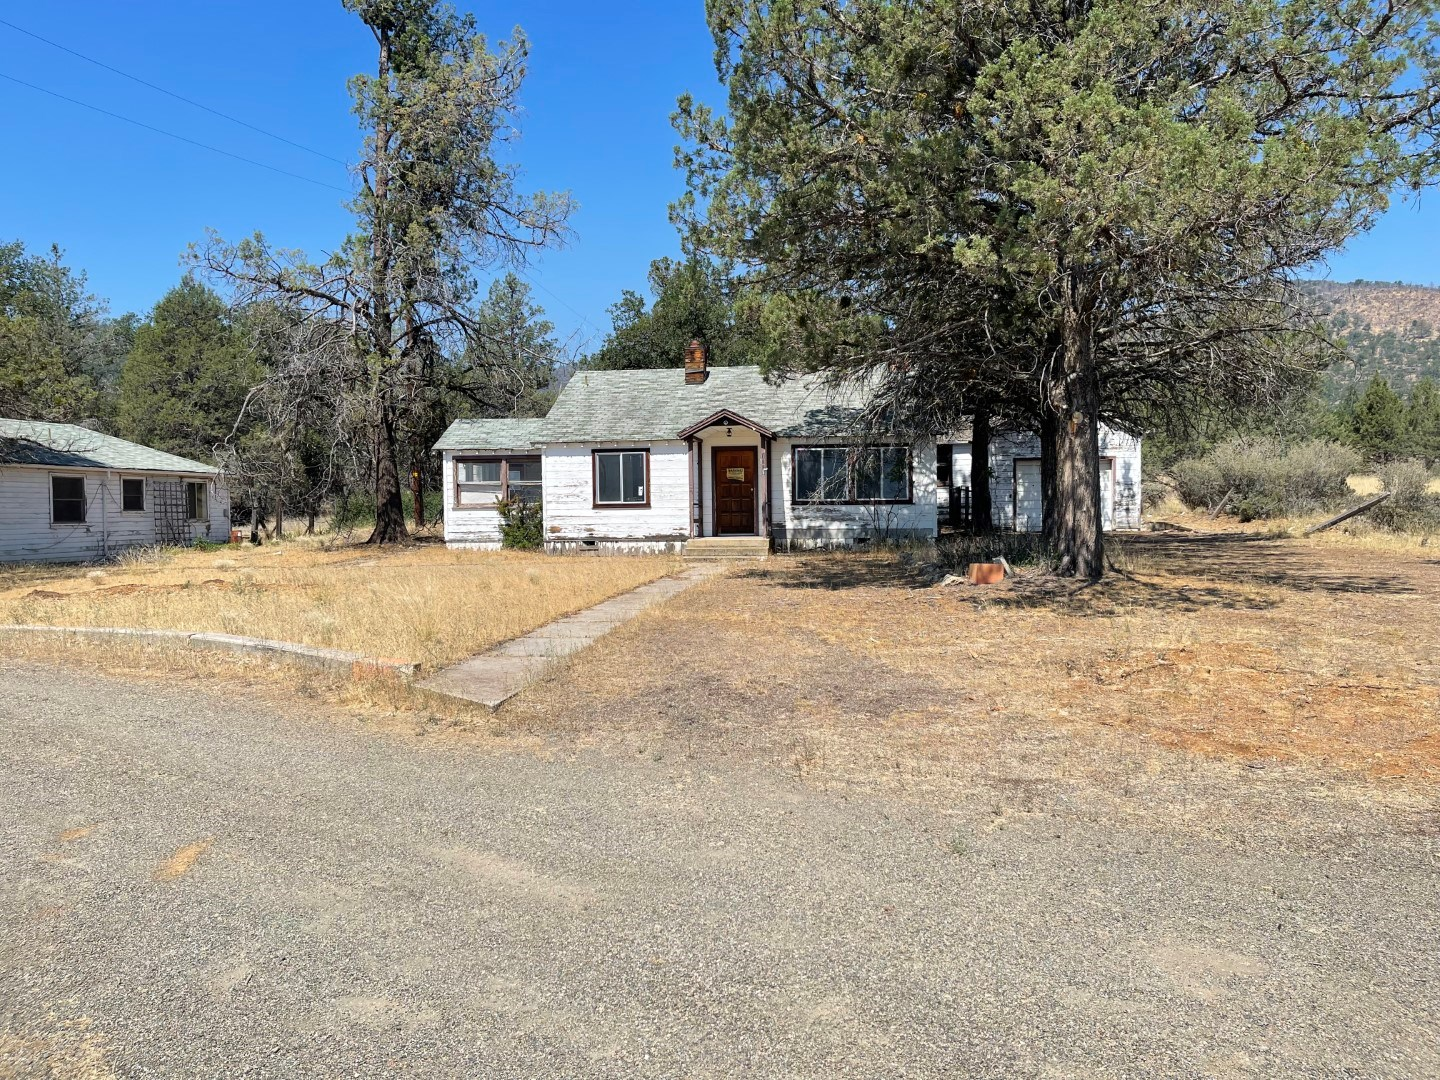 Two Homes on acreage for sale in Northern California